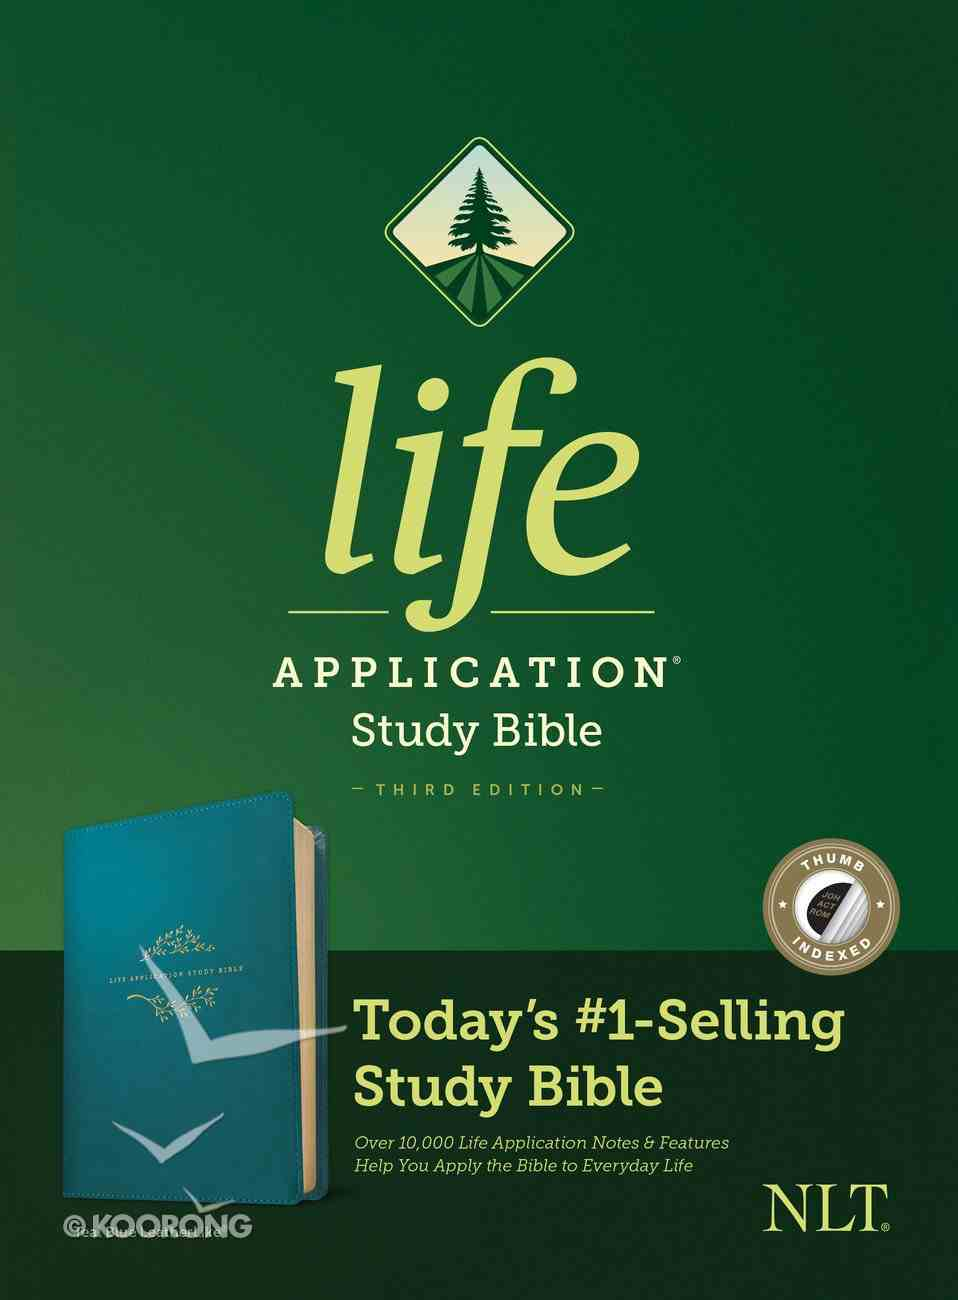 NLT Life Application Study Bible 3rd Edition Teal Blue Indexed (Black Letter Edition) Imitation Leather